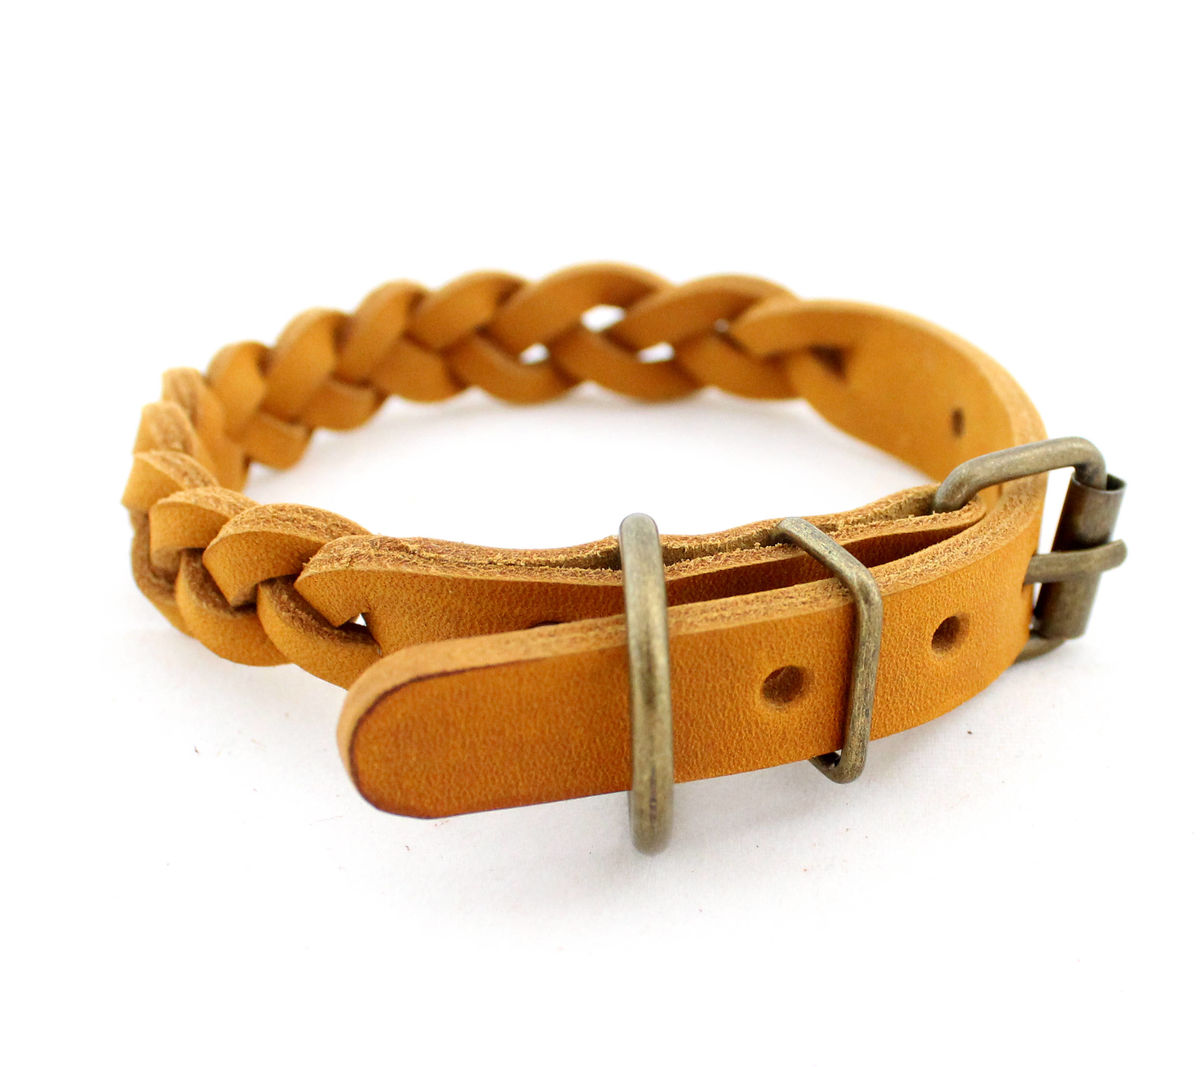 Handmade leather dog braid collar XS - product images  of